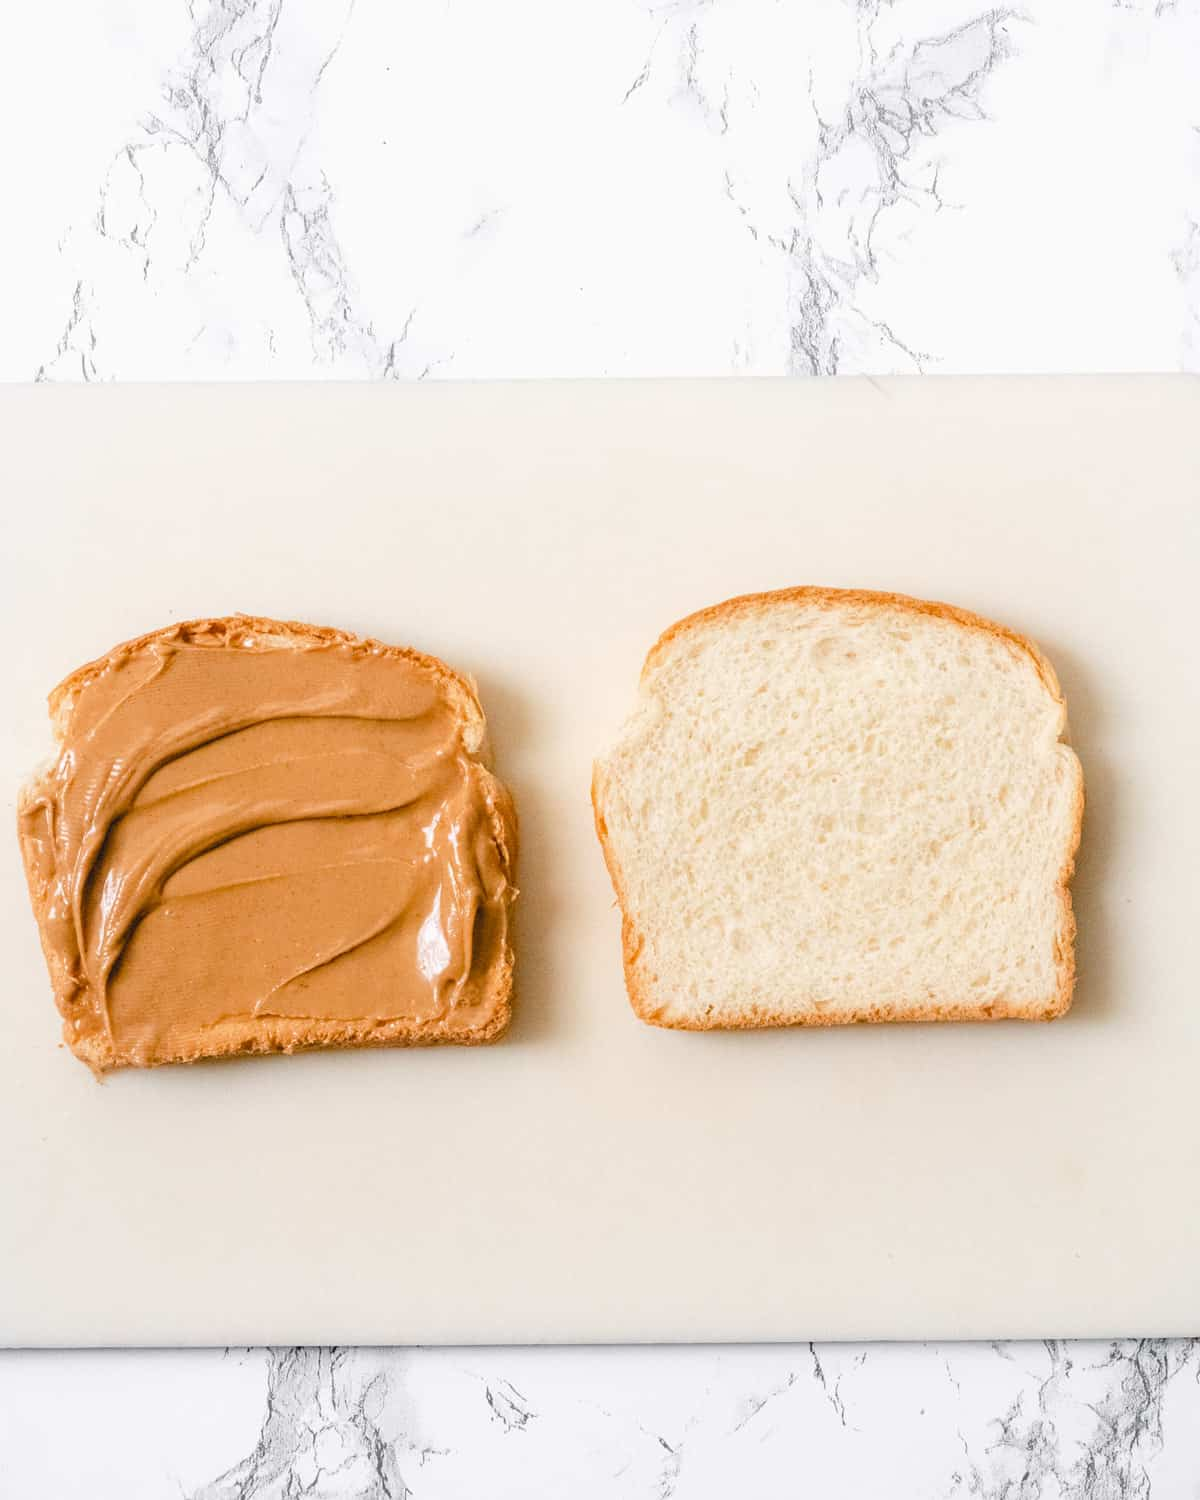 Peanut butter on one slice of bread on the left, and a plain piece of bread on the right.